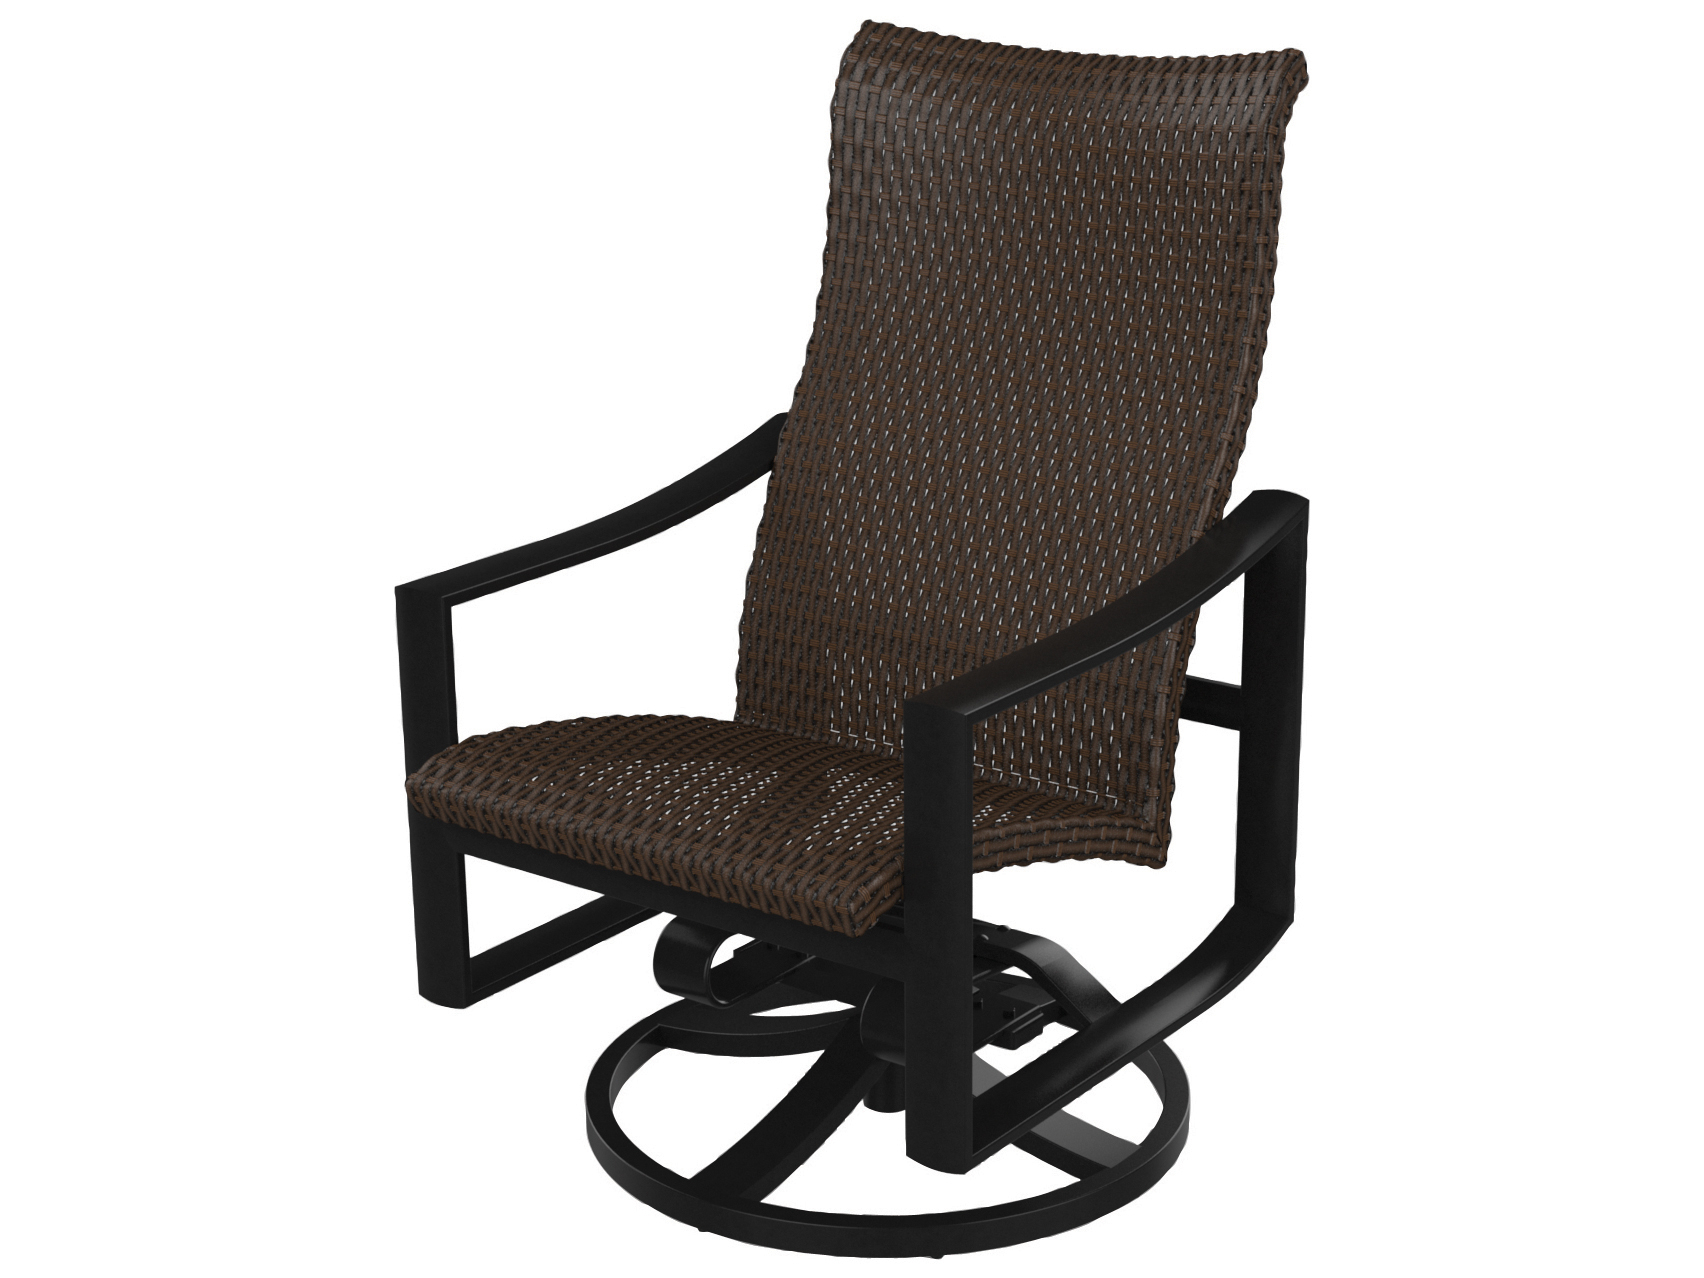 Woven High Back Swivel Chairs Within Preferred Tropitone Kenzo Woven High Back Swivel Rocker (View 8 of 30)